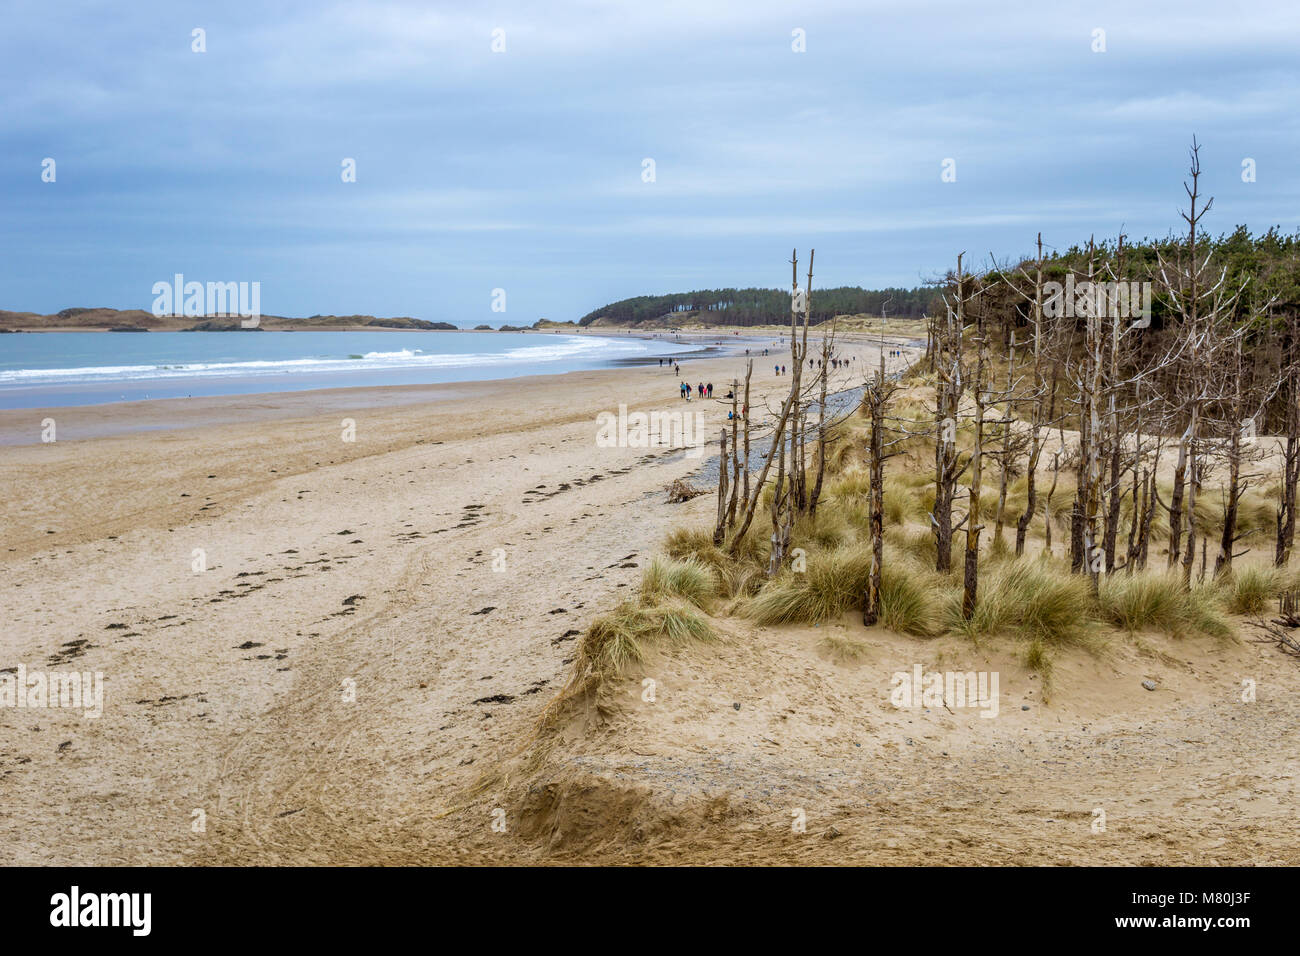 UK, Anglesey, Newborough, 11th March 2018. A view towards Llanddwyn Island with the forest and dead wood trees in the foreground. Stock Photo